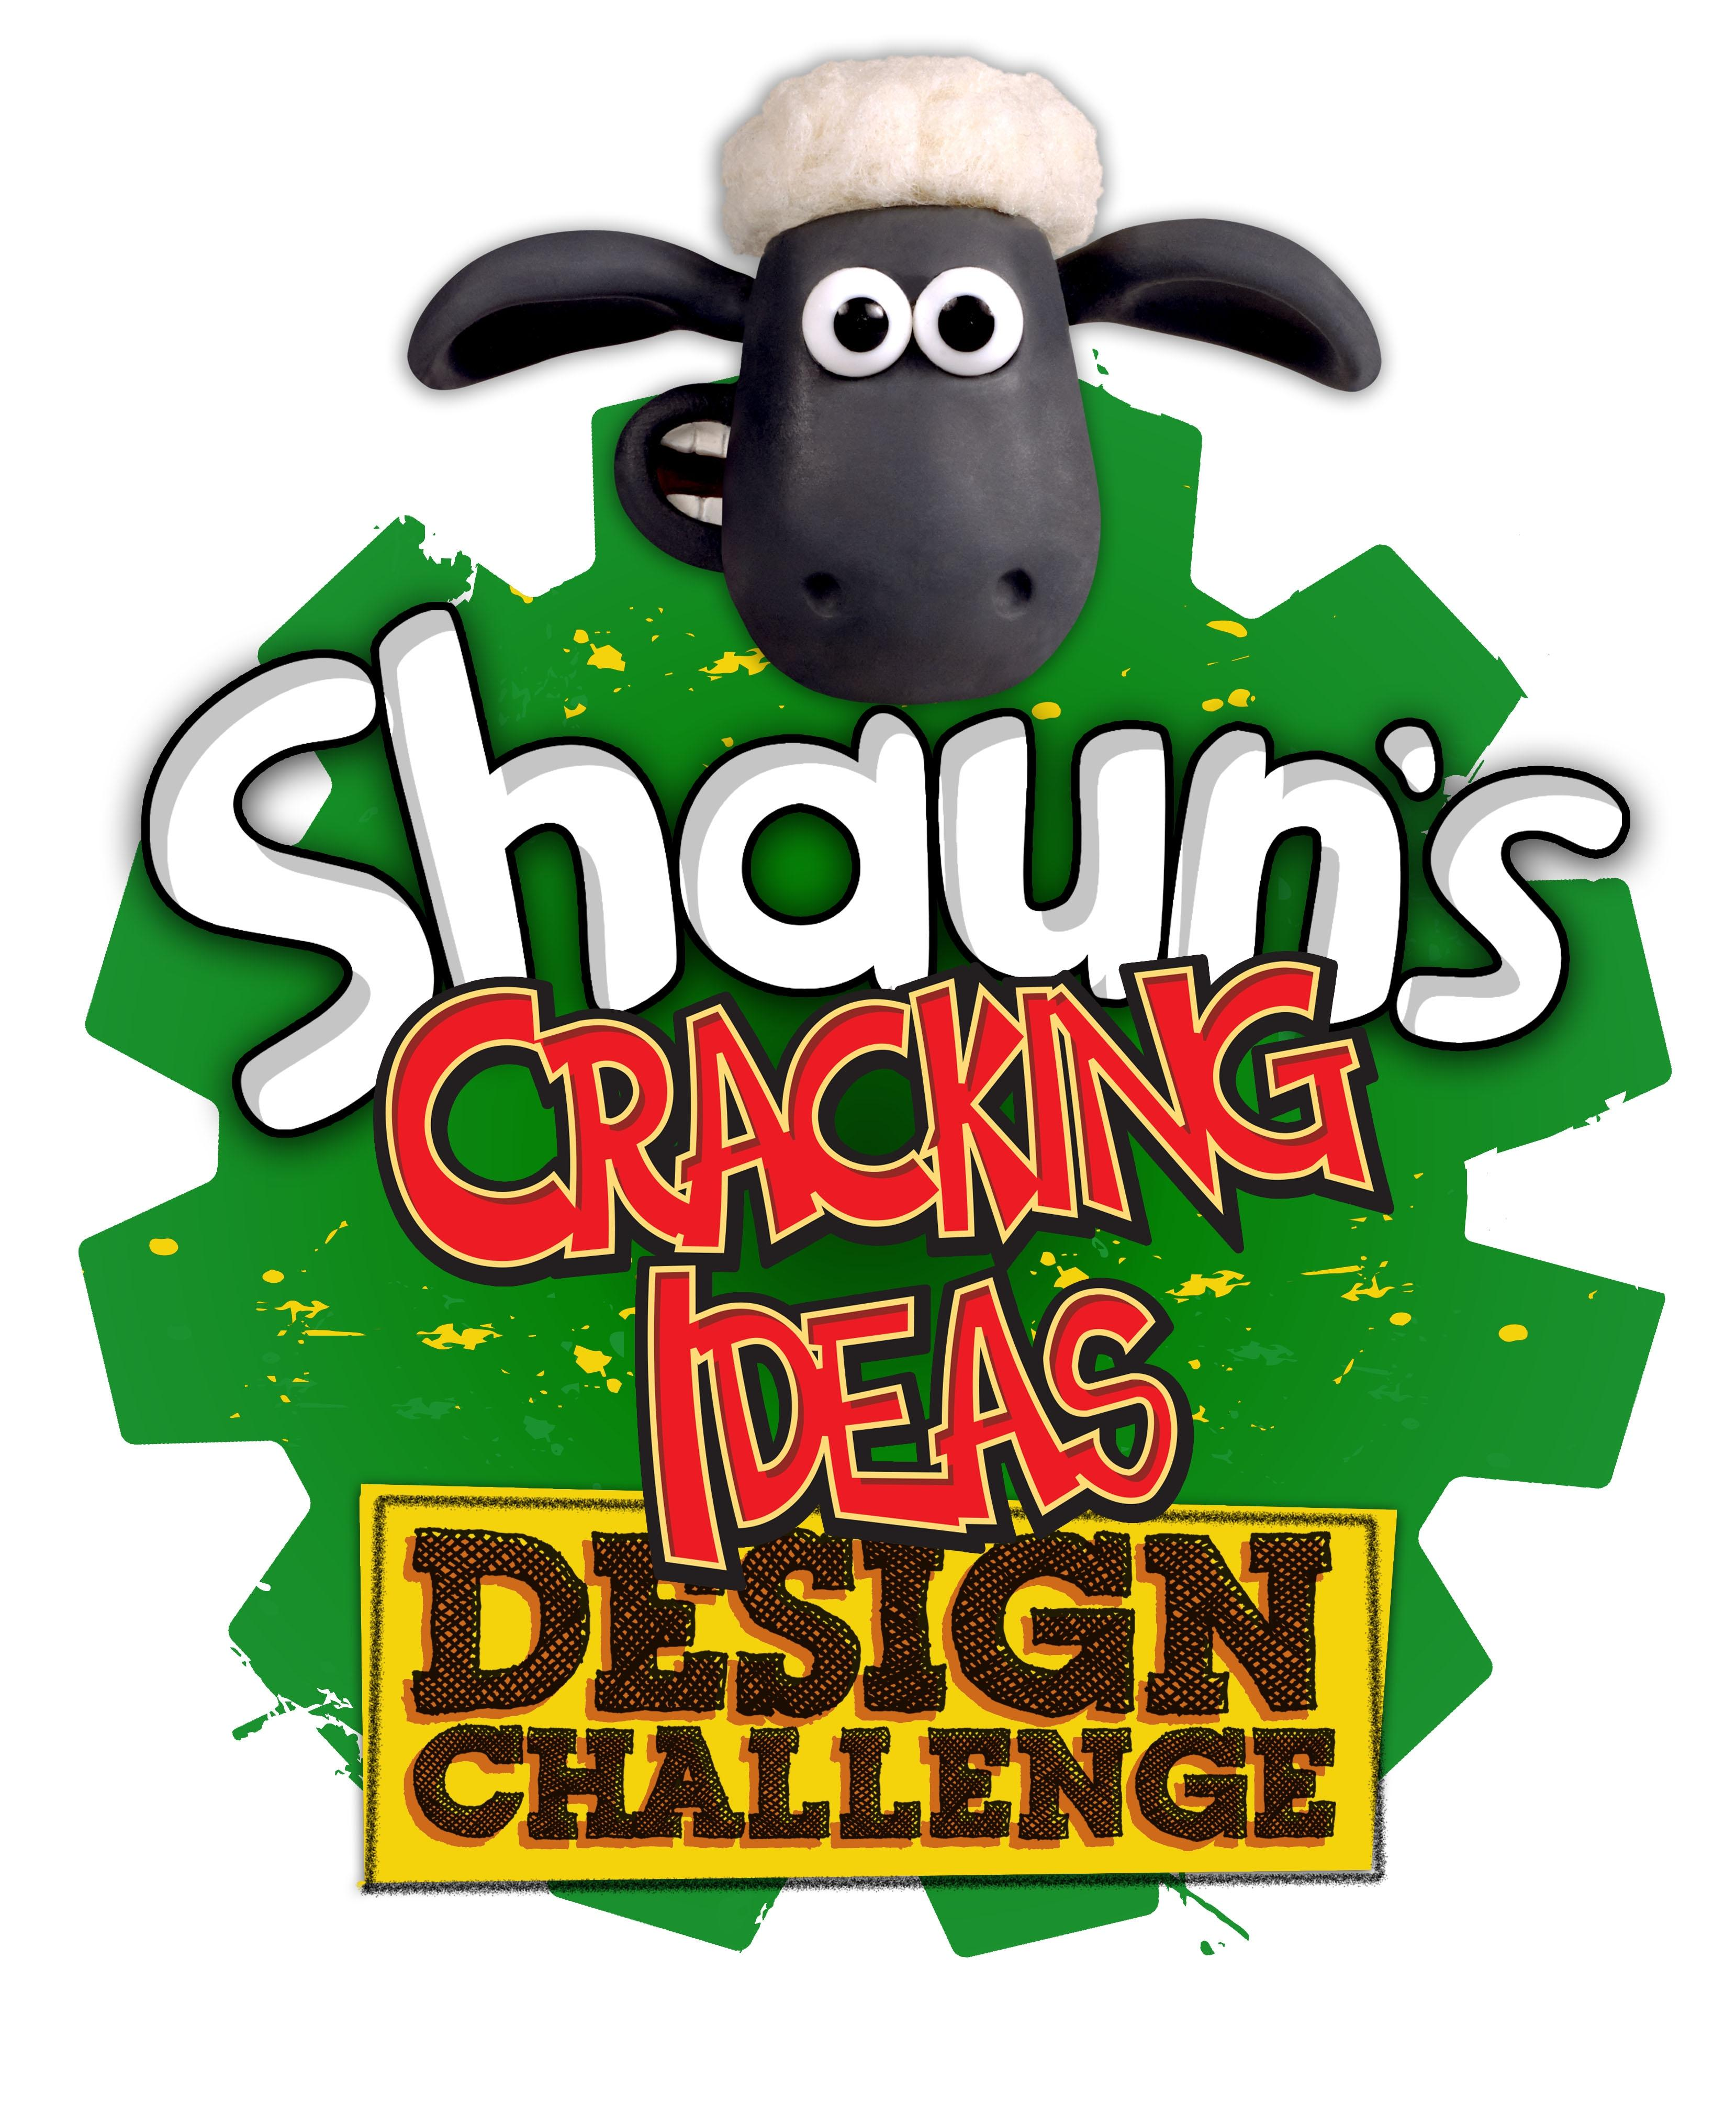 Baaa-rilliant chance to take part in Shaun the Sheep design challenge